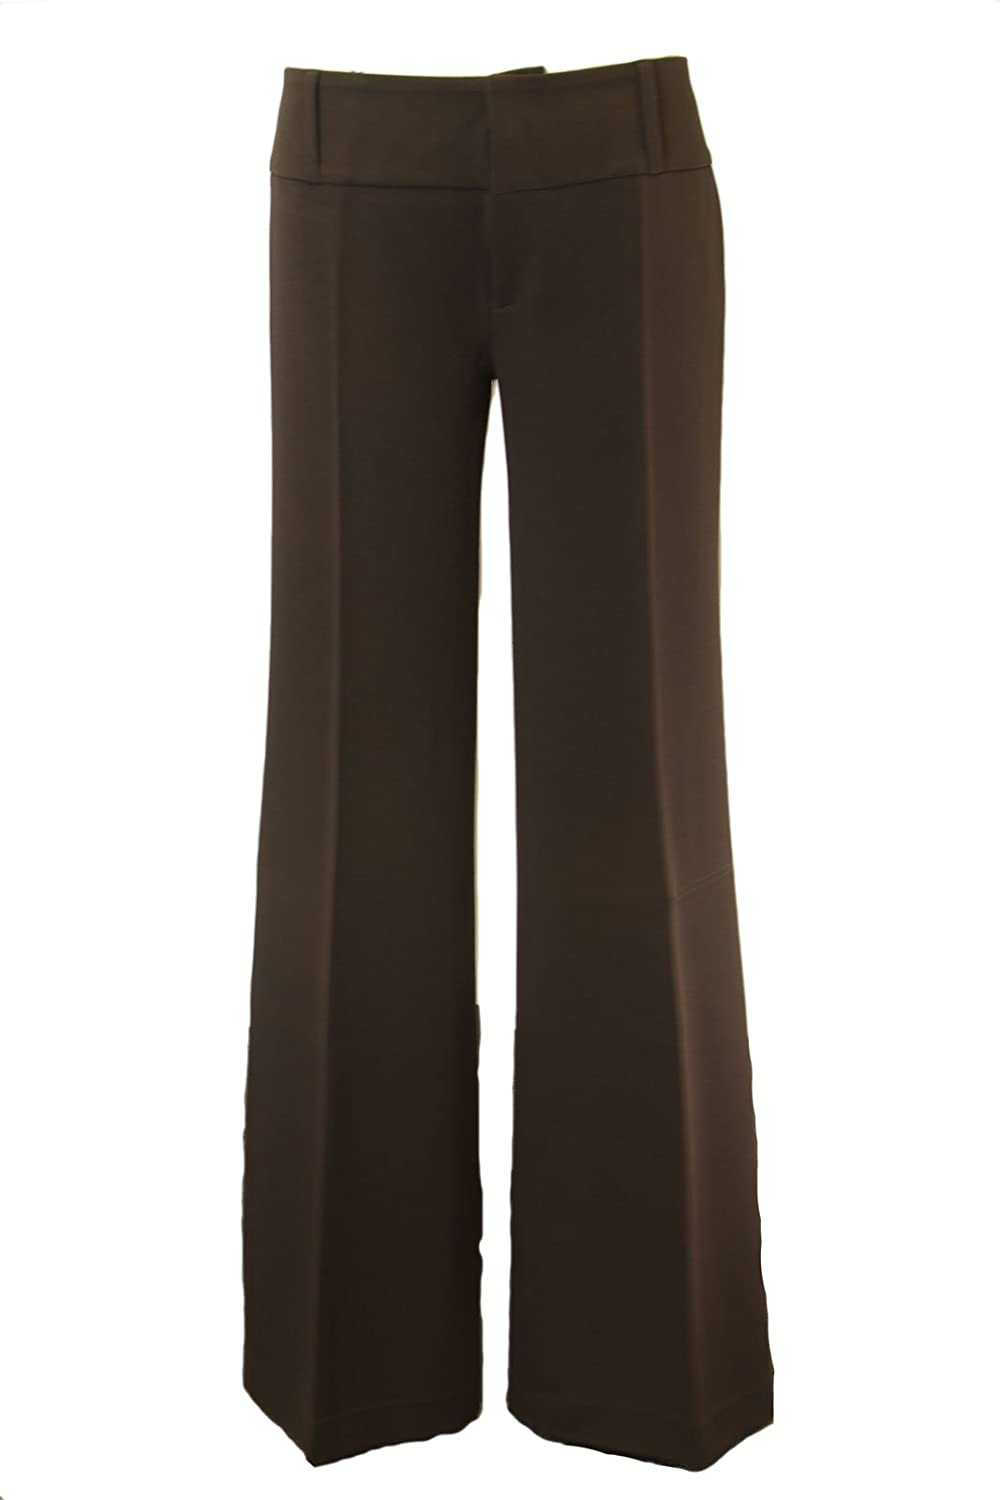 ANALILI Women's Brown Hook and Bar Slightly Flare Pants 140JP20